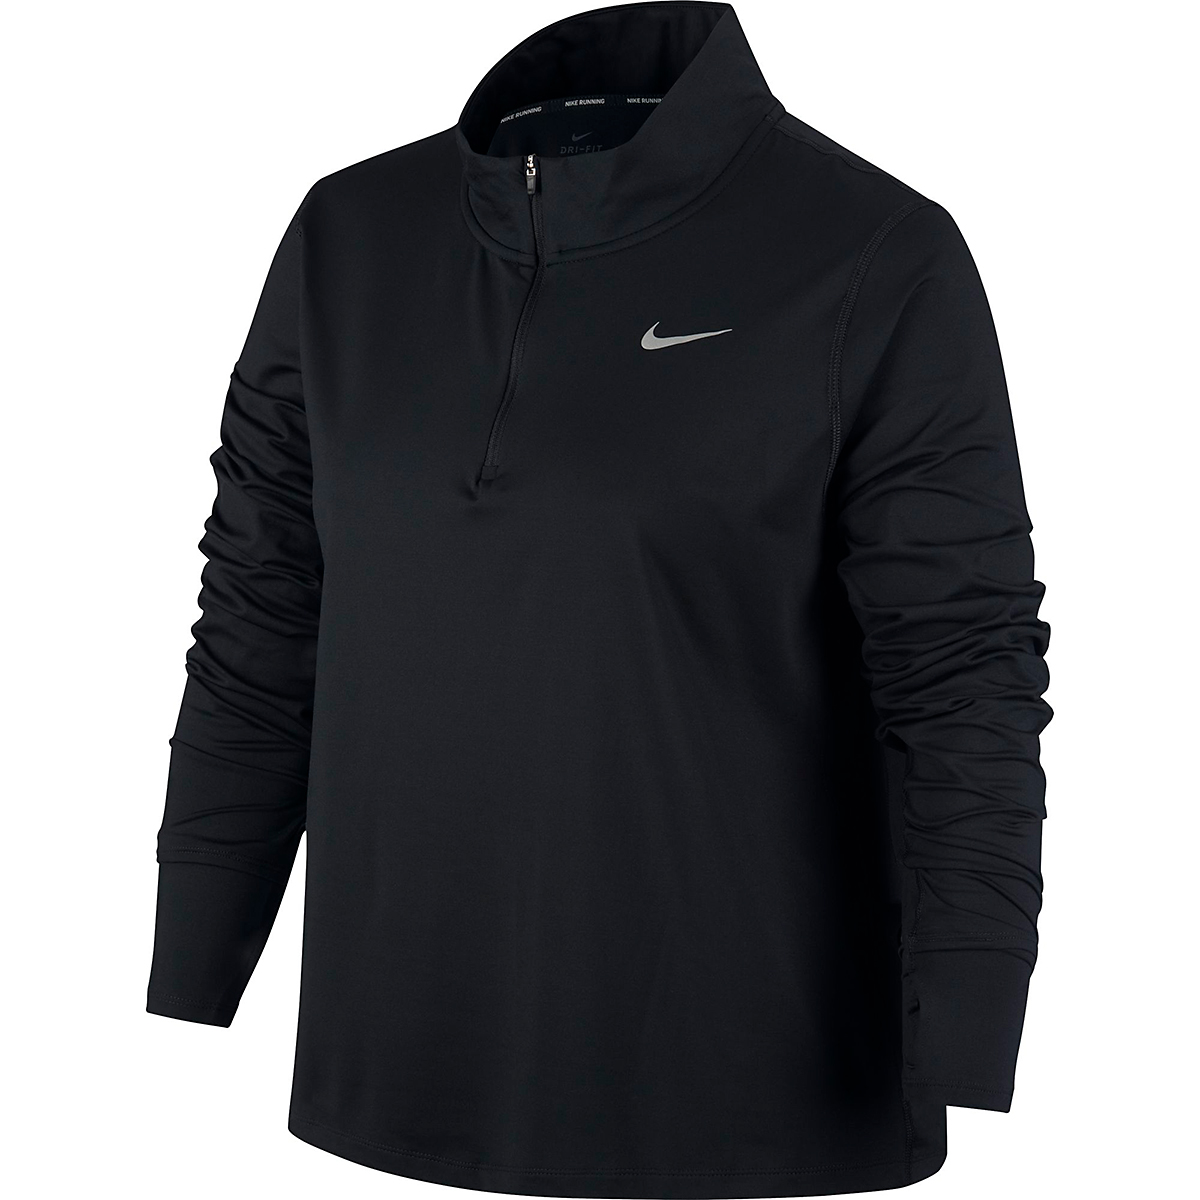 Women's Nike Element 1/2-Zip Running Top - Color: Black - Size: S, Black, large, image 1